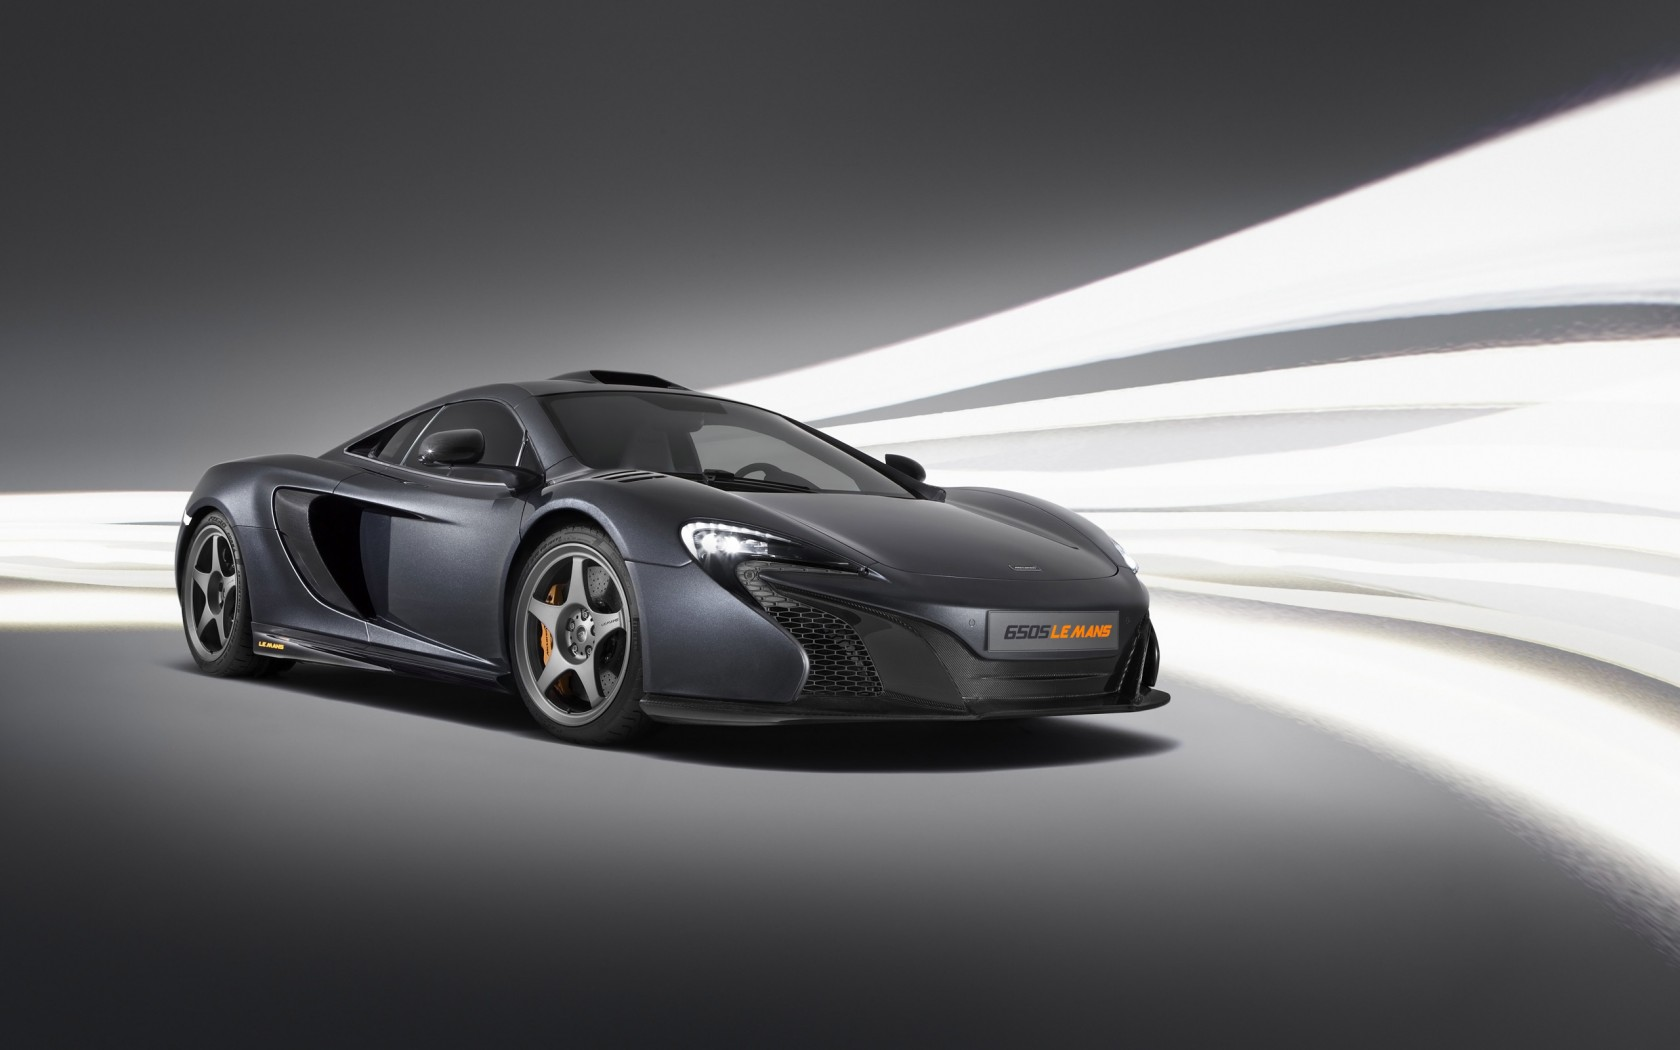 2015 Mclaren 650s Le Mans Wallpaper Hd Car Wallpapers Id 5874